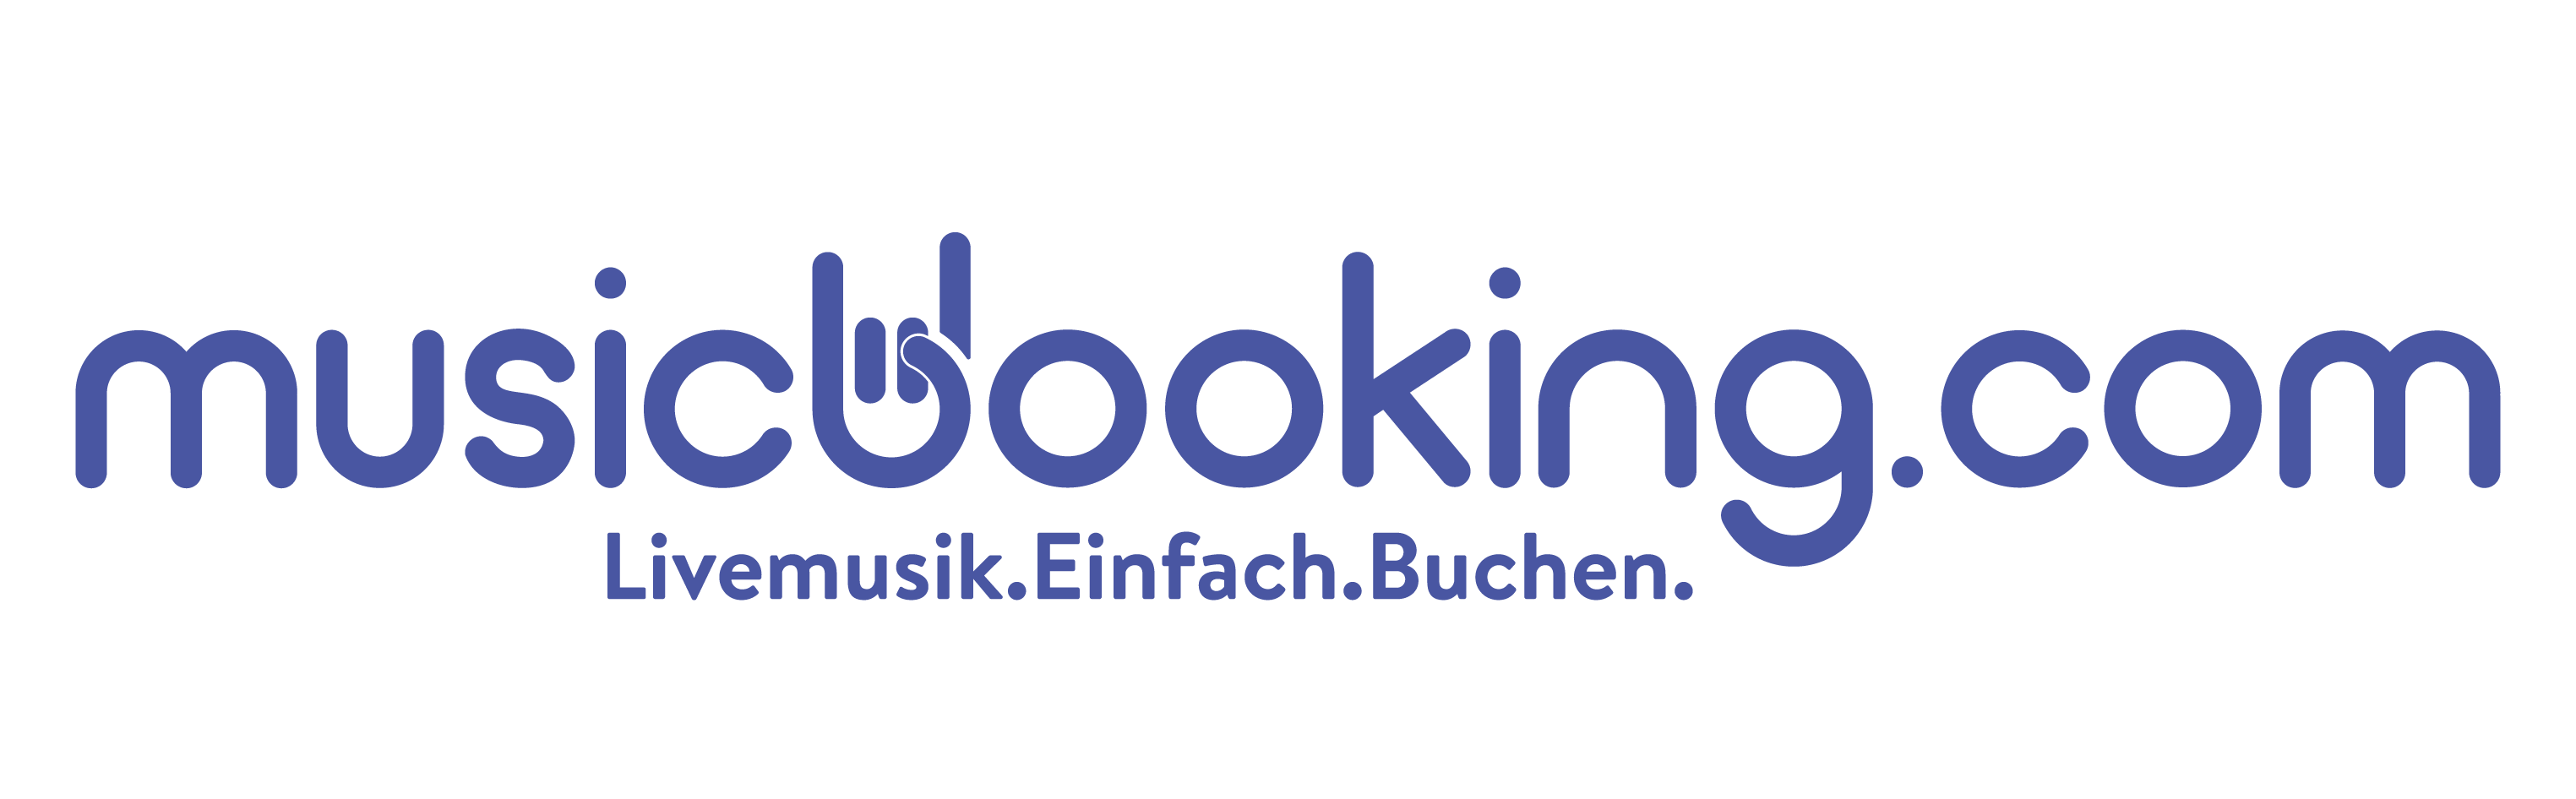 musicbooking_logo_final_pantone_logo_text_com